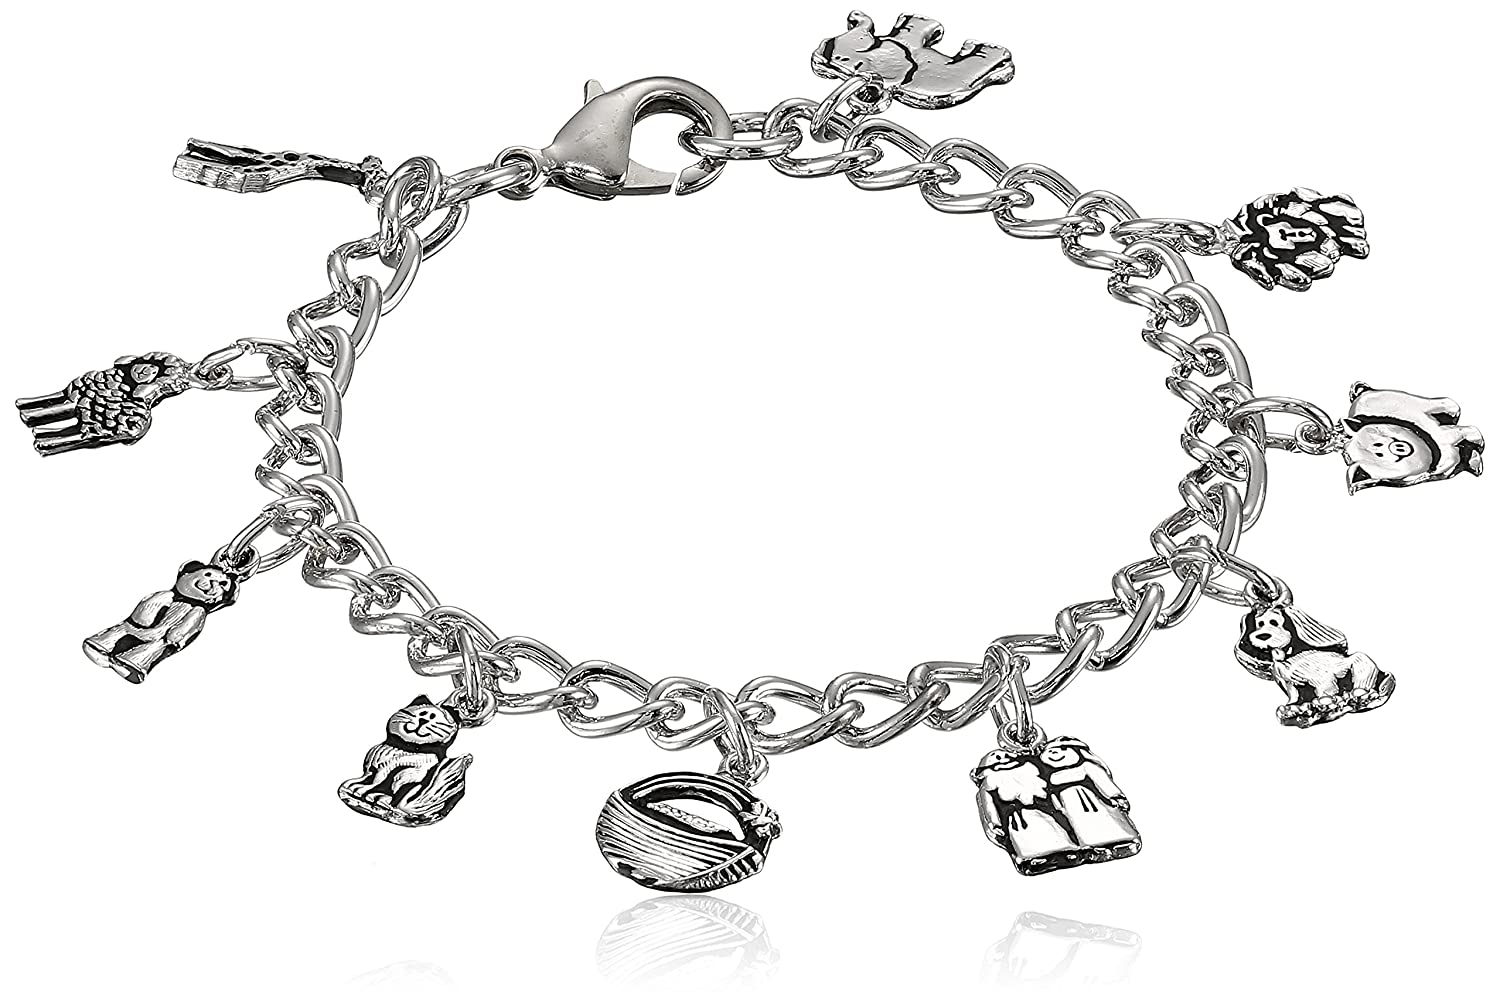 Bob Siemon Pewter Noah's Ark Children's Bracelet Amazon Curated Collection 510-339-5657